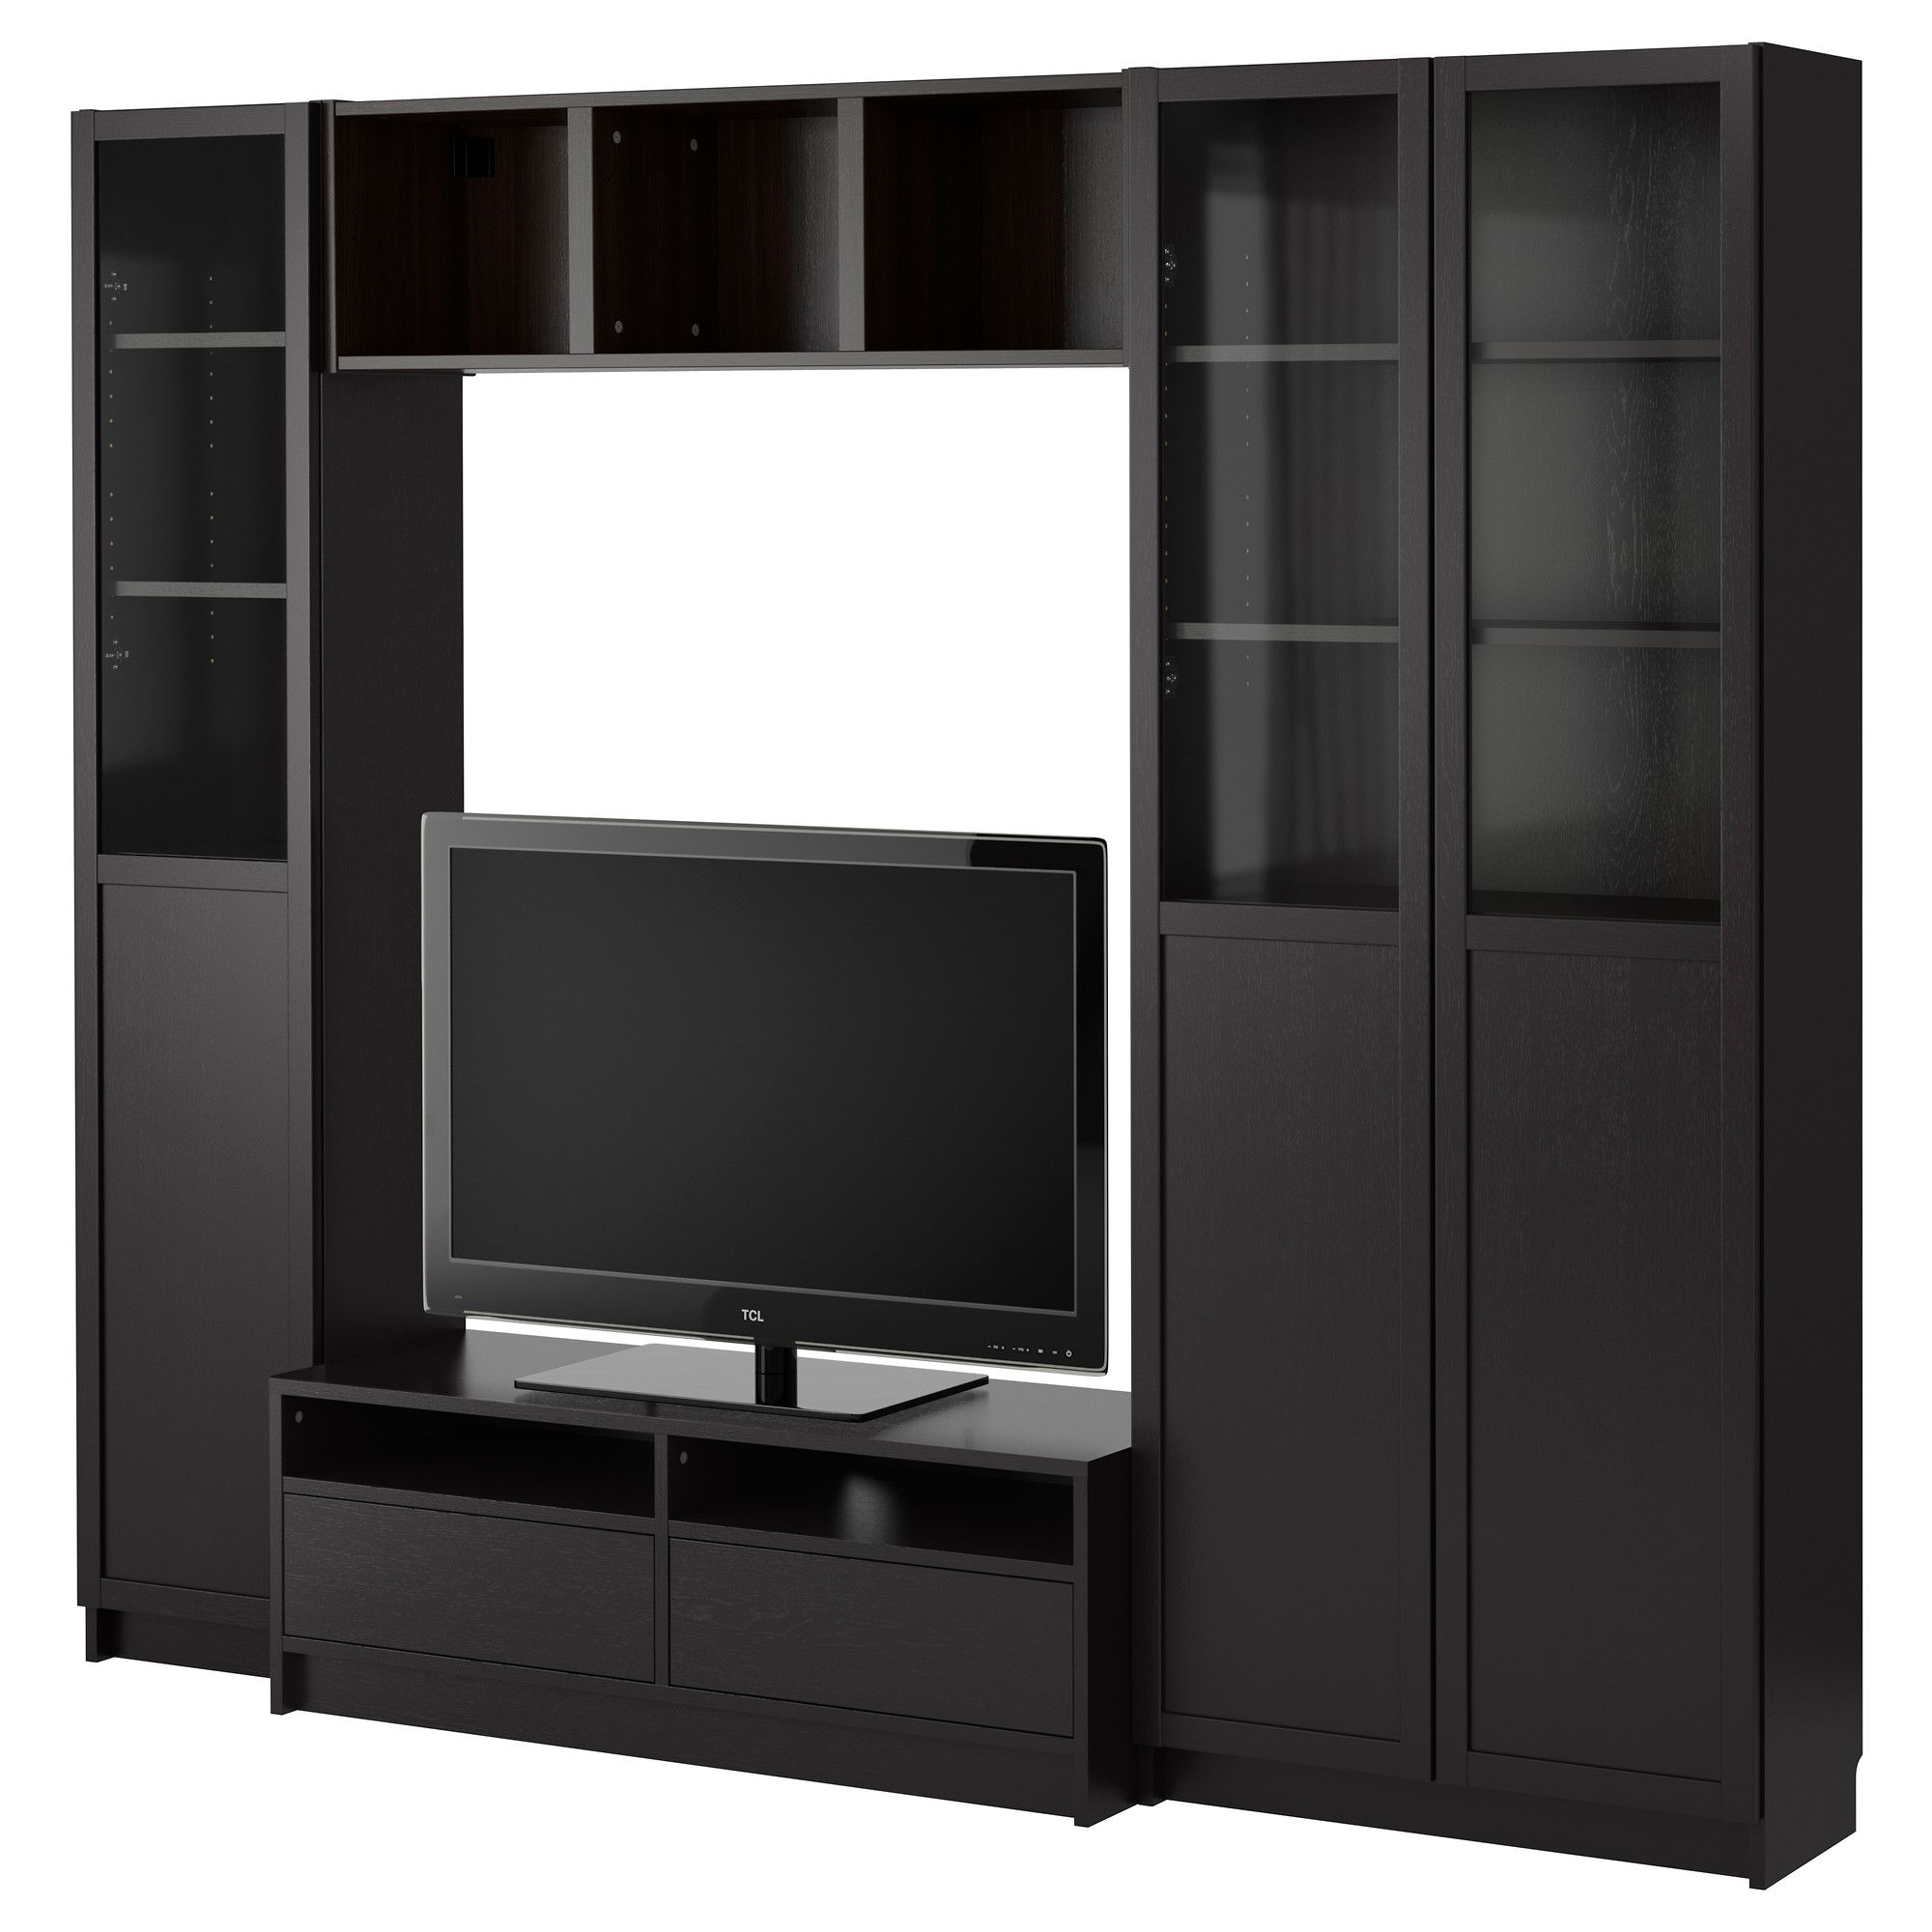 Tv Meubel Billy.Furniture And Home Furnishings Ikea Bookcase Tv Bench Ikea